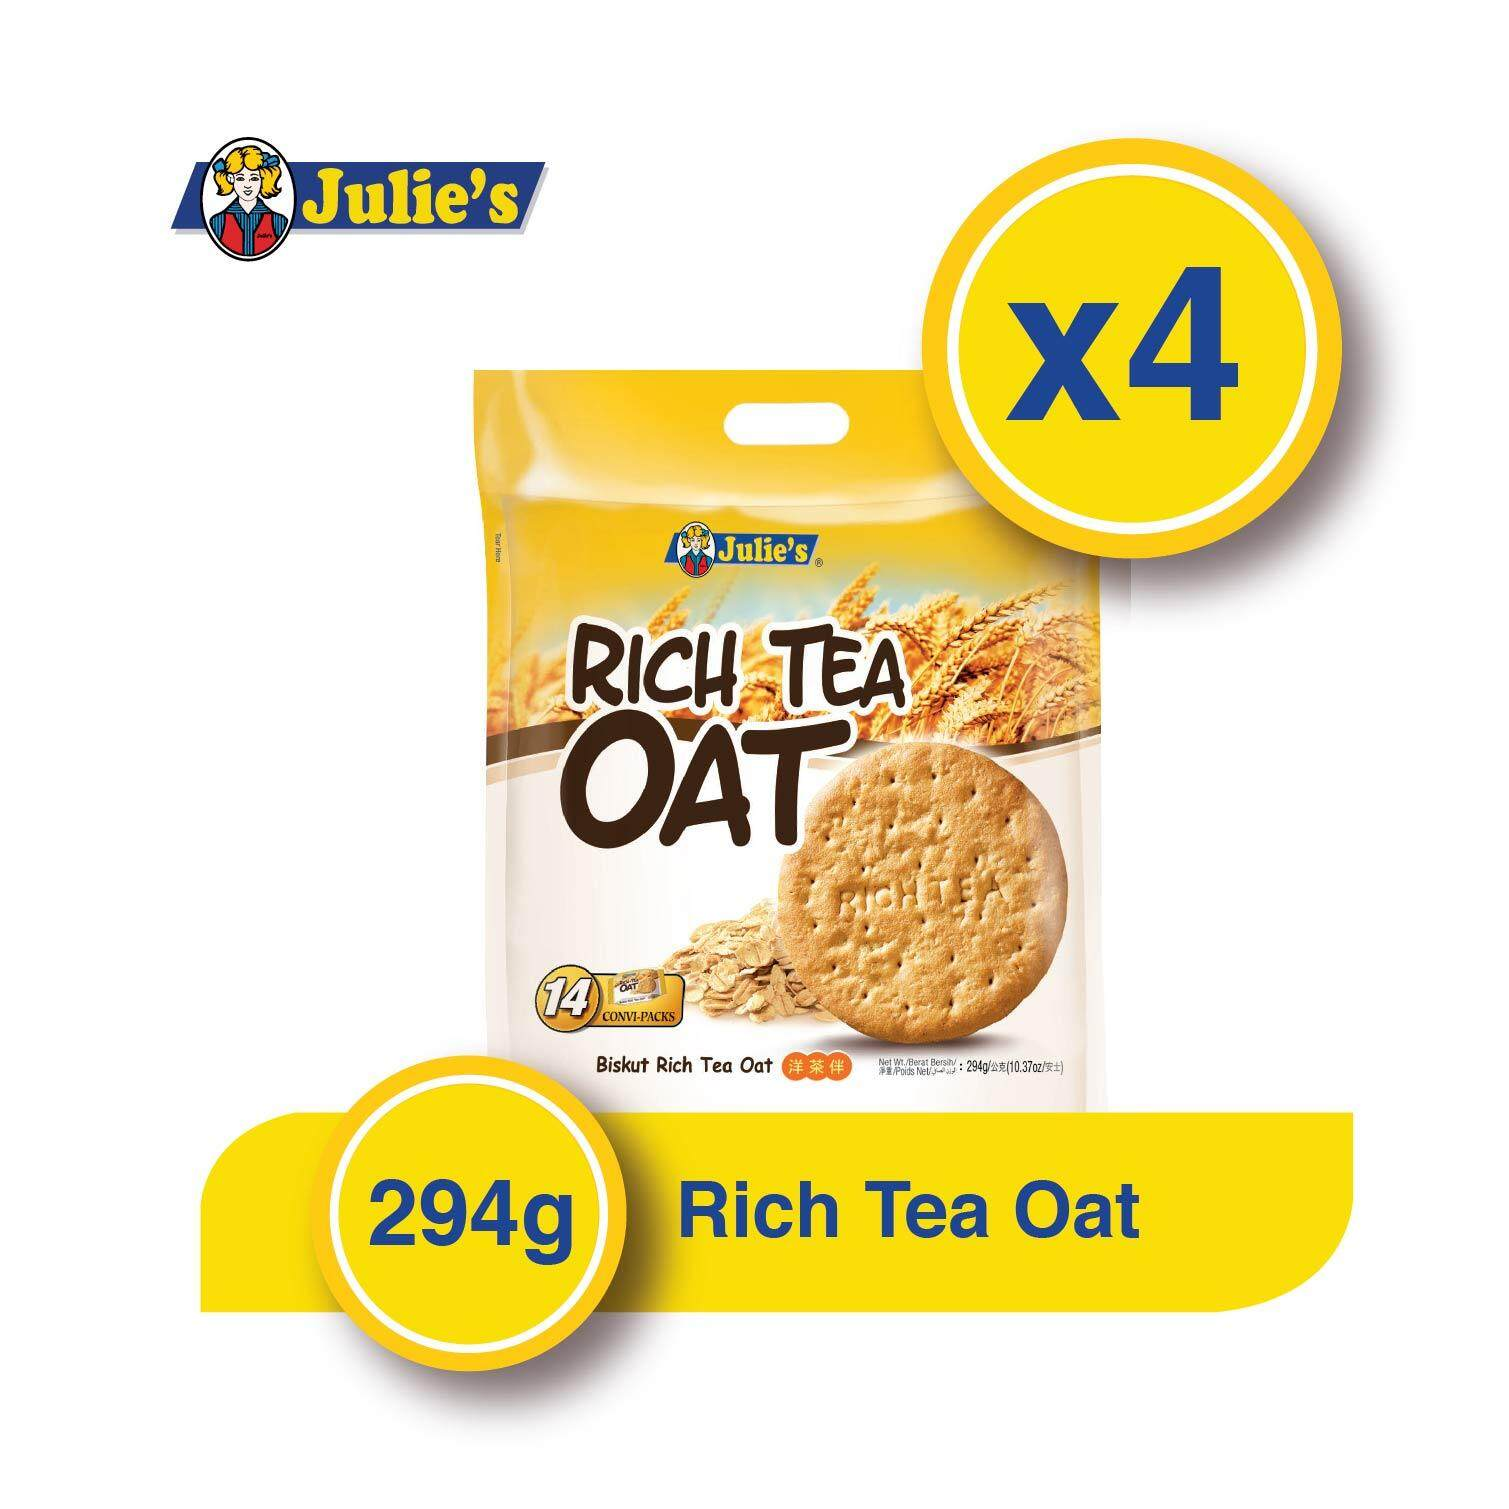 Julie's Rich Tea Oat (294g x 4 packet)